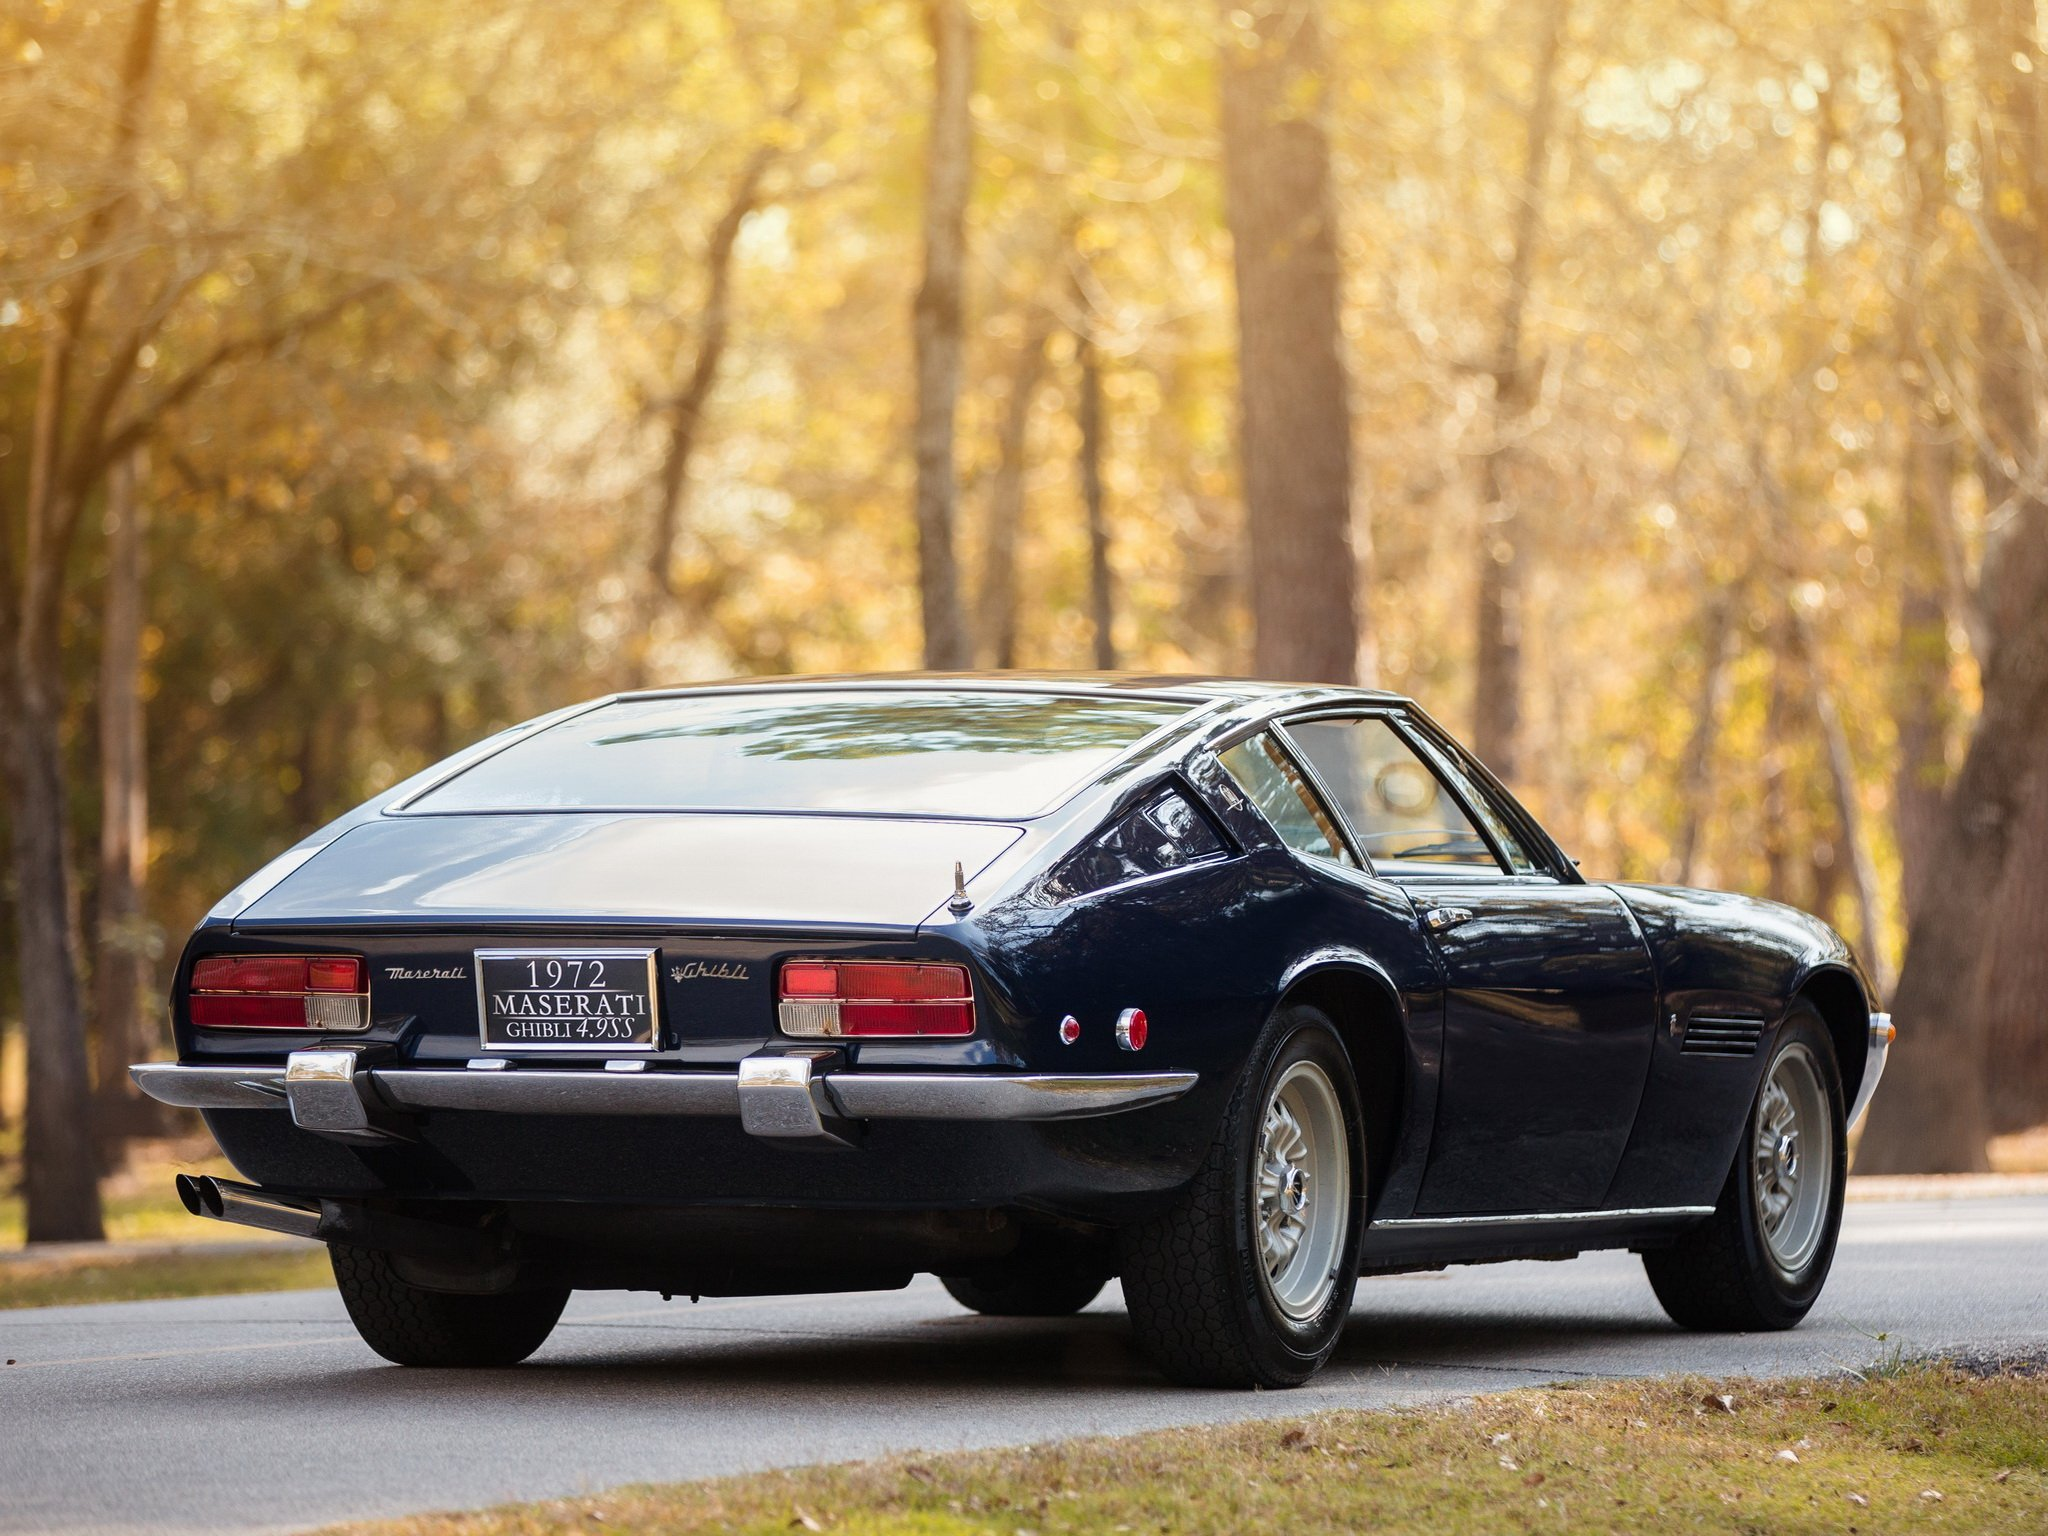 Small Size Car Wallpapers 1970 73 Maserati Ghibli Ss Us Spec Am115 49 Classic